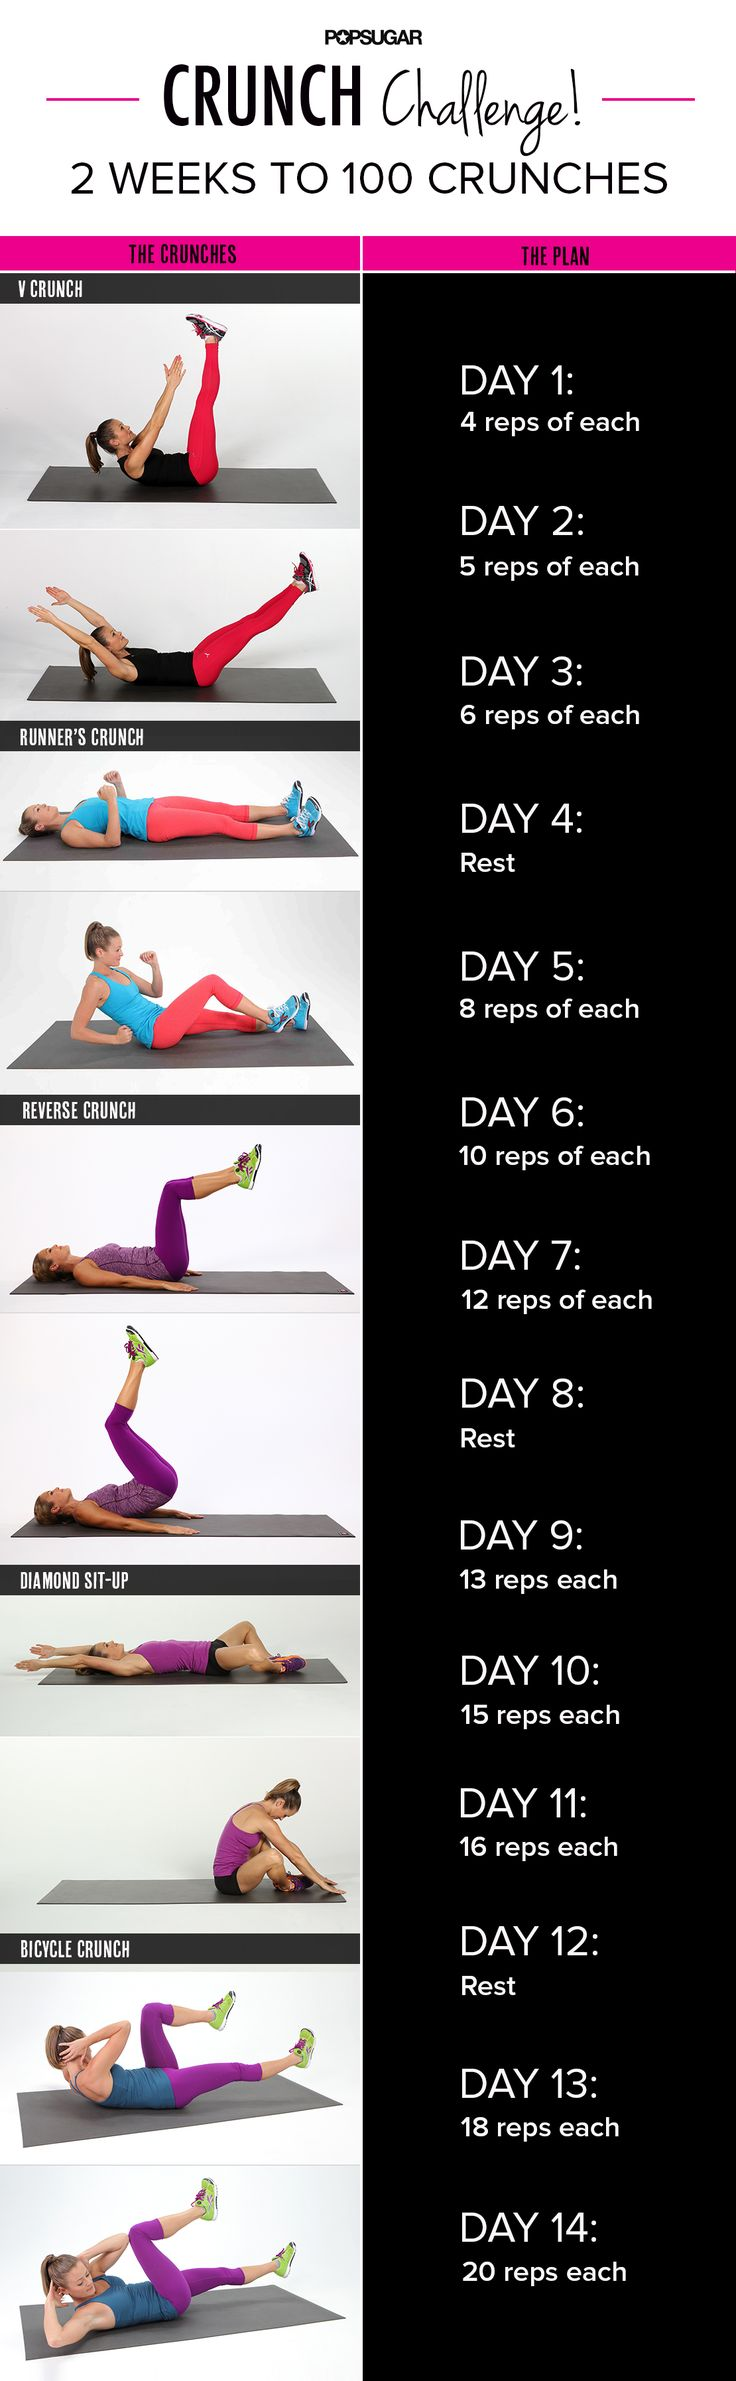 This 2-week crunch challenge build up to 100 crunches! Don't worry it's 5 different variations to work your entire core.